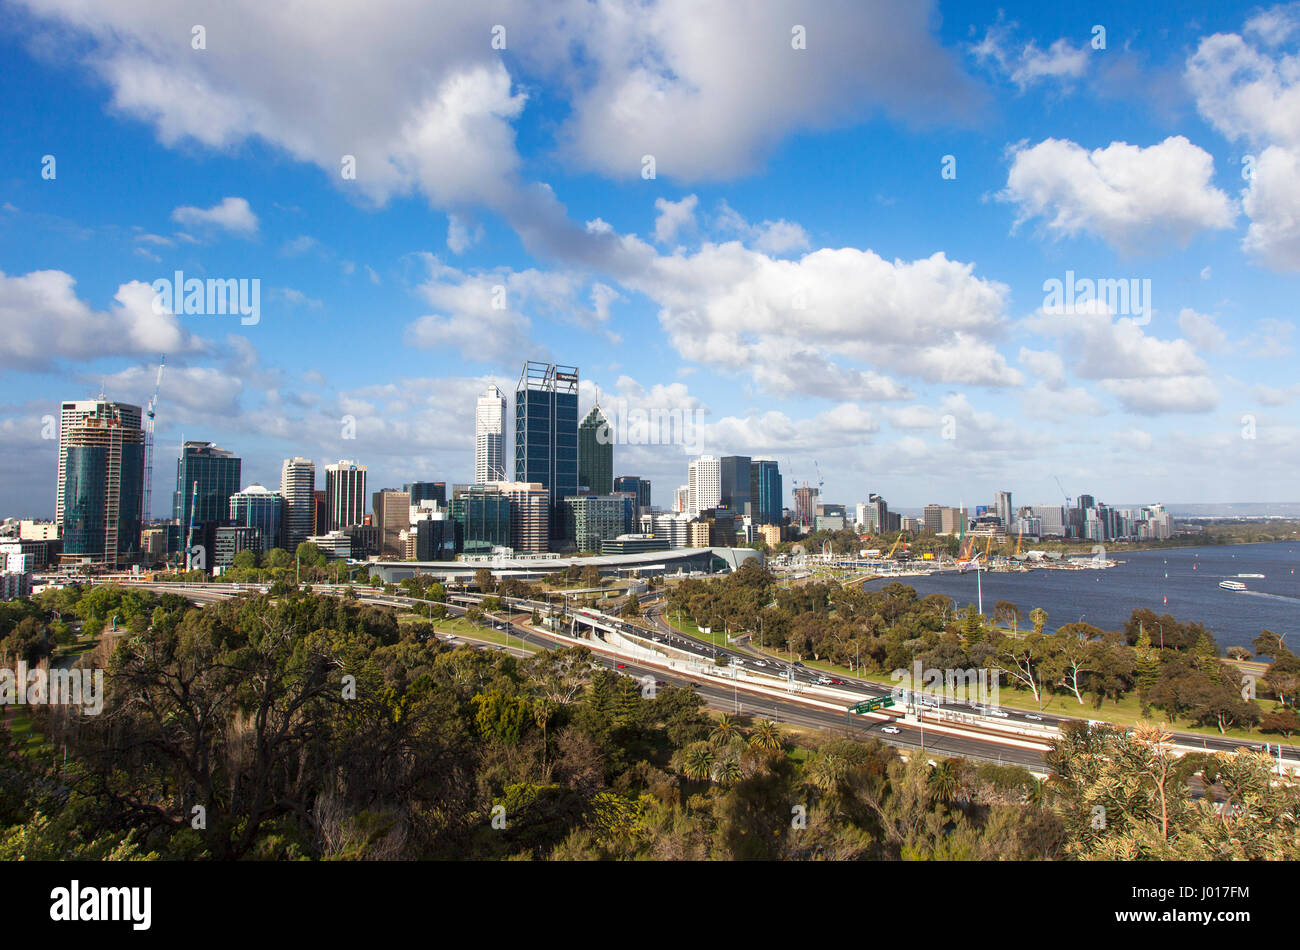 The City of Perth, Australia - Stock Image